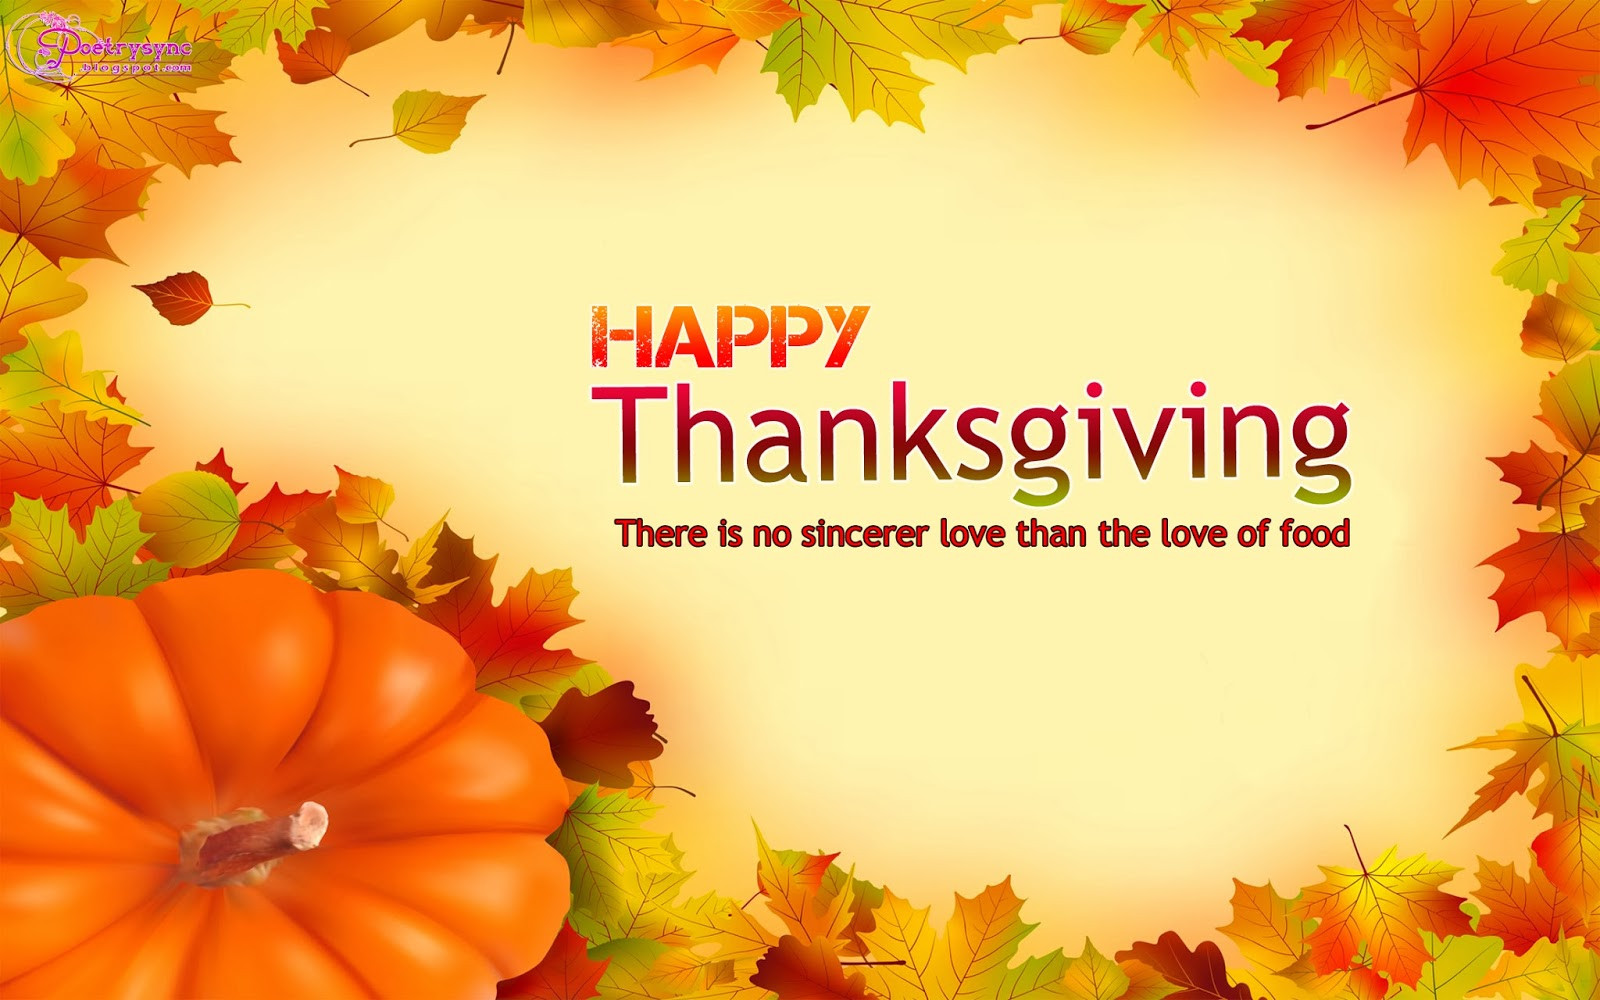 Happy Thanksgiving Pics And Quotes  Happy Thanksgiving Day Quotes QuotesGram